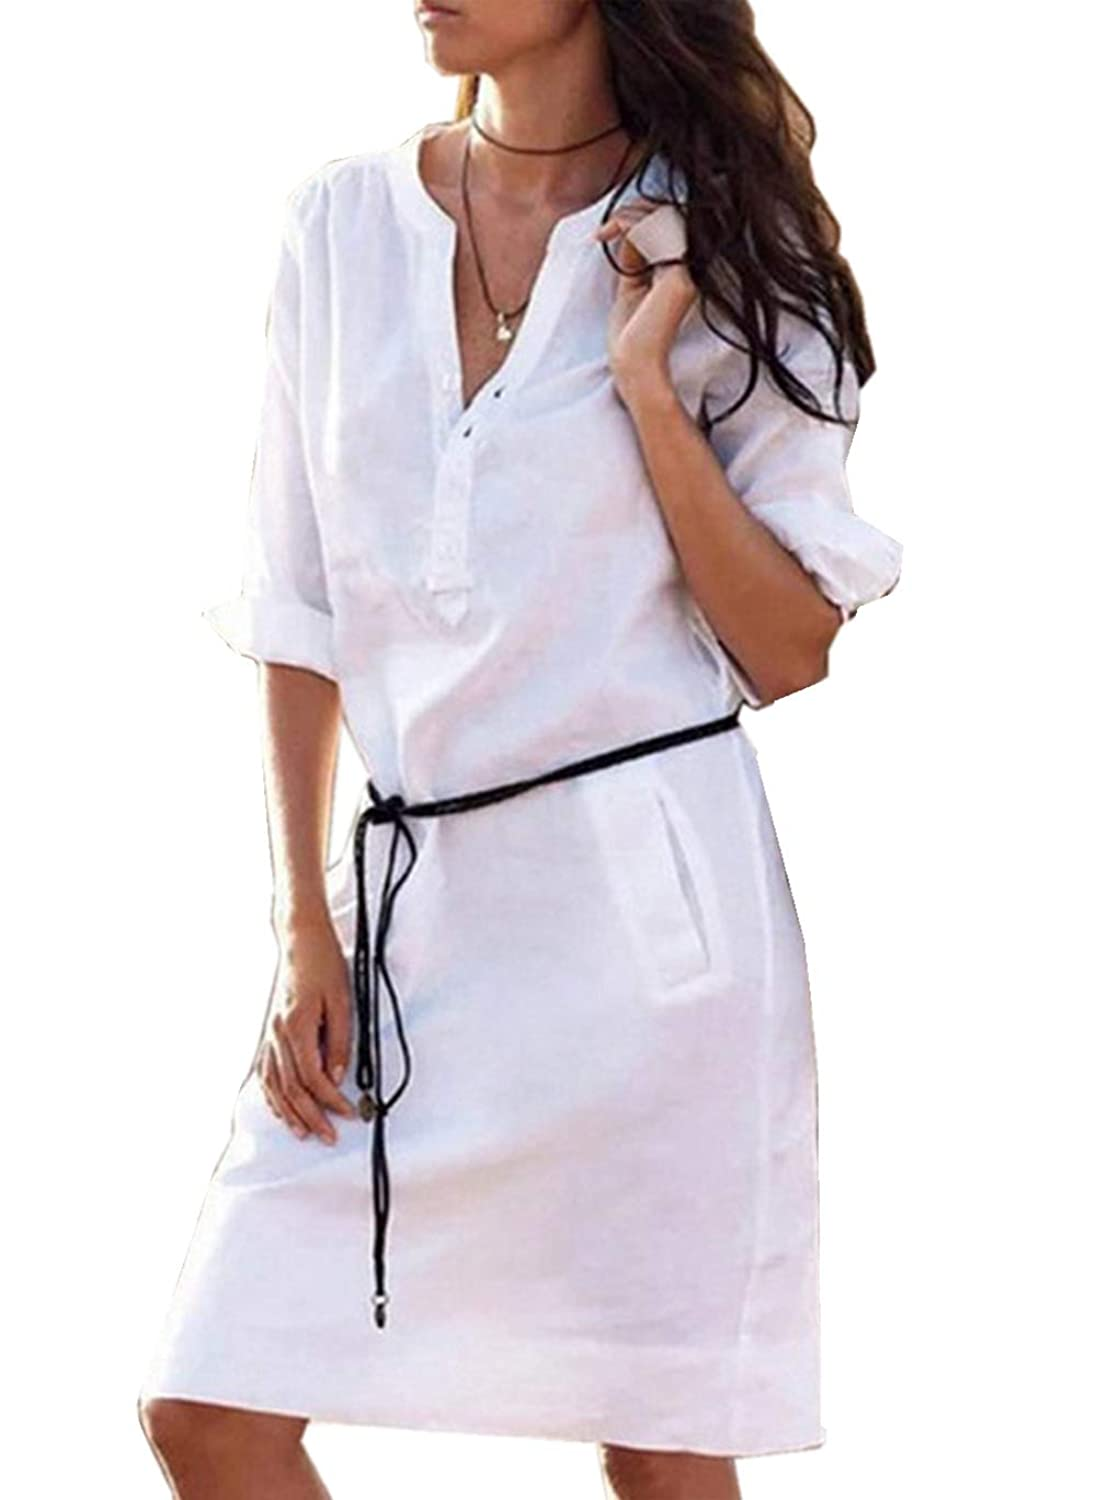 a43cdbf52d00 Convenient Pocket design. Quick Access for Easy On and Off. High quality.  Occasion: Suitable for Daily Wear, Casual and Other Activities.